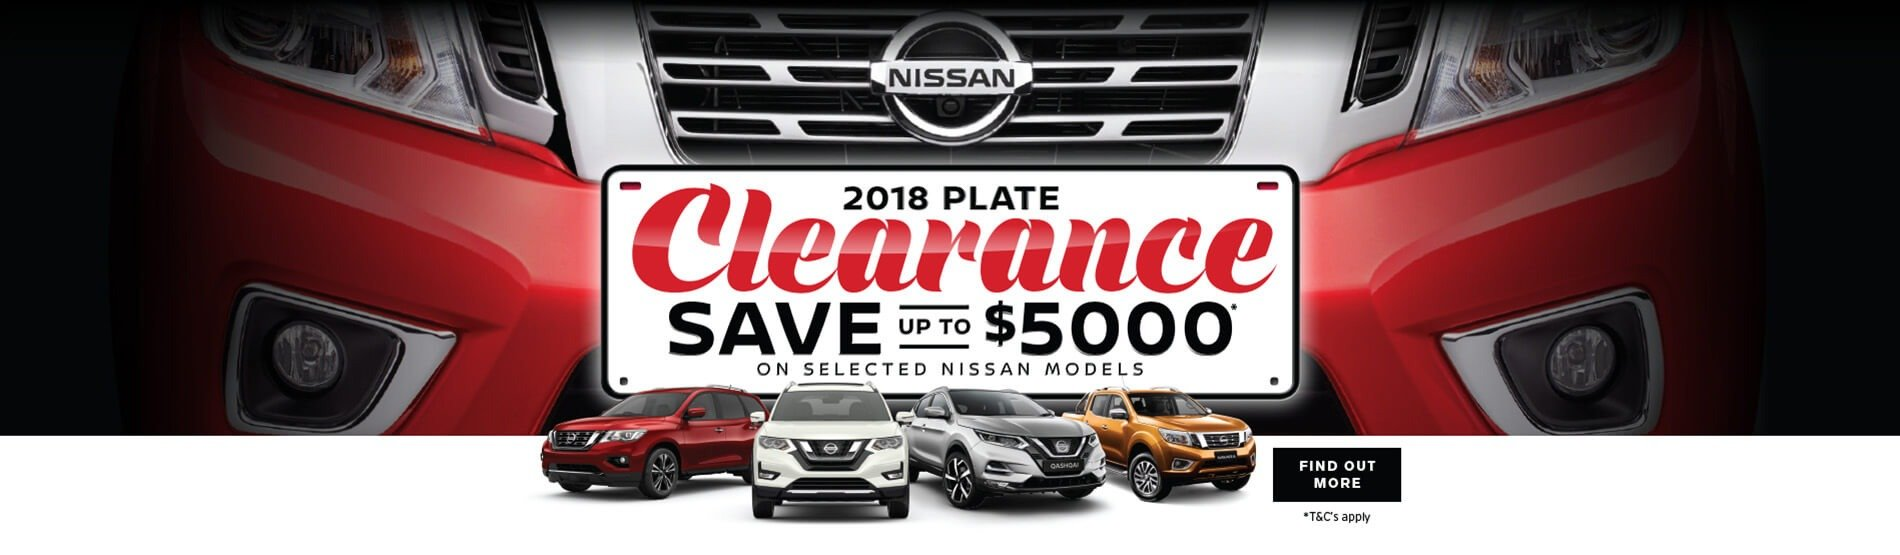 Rockdale Nissan - 2018 Plate Clearance